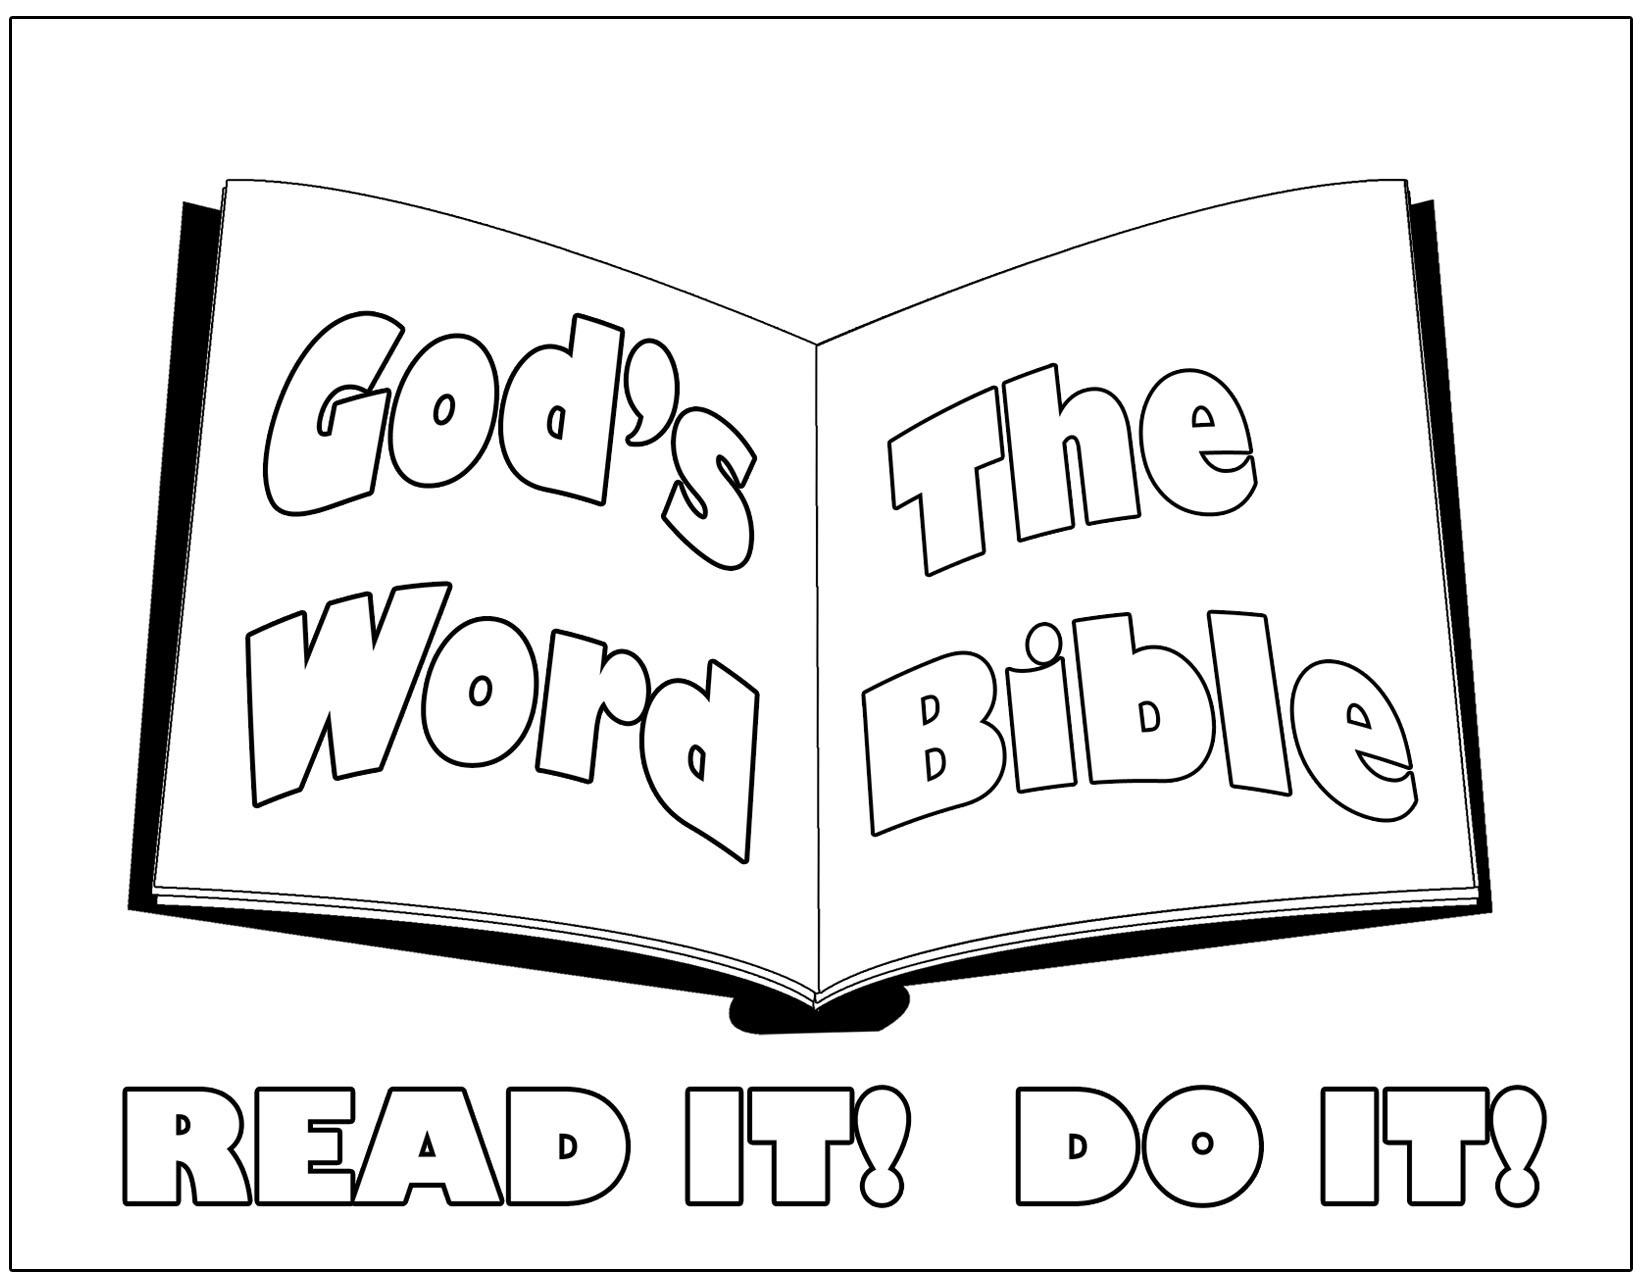 free printable bible coloring pages for children bible story coloring pages summer 2019 illustrated coloring for bible pages free children printable